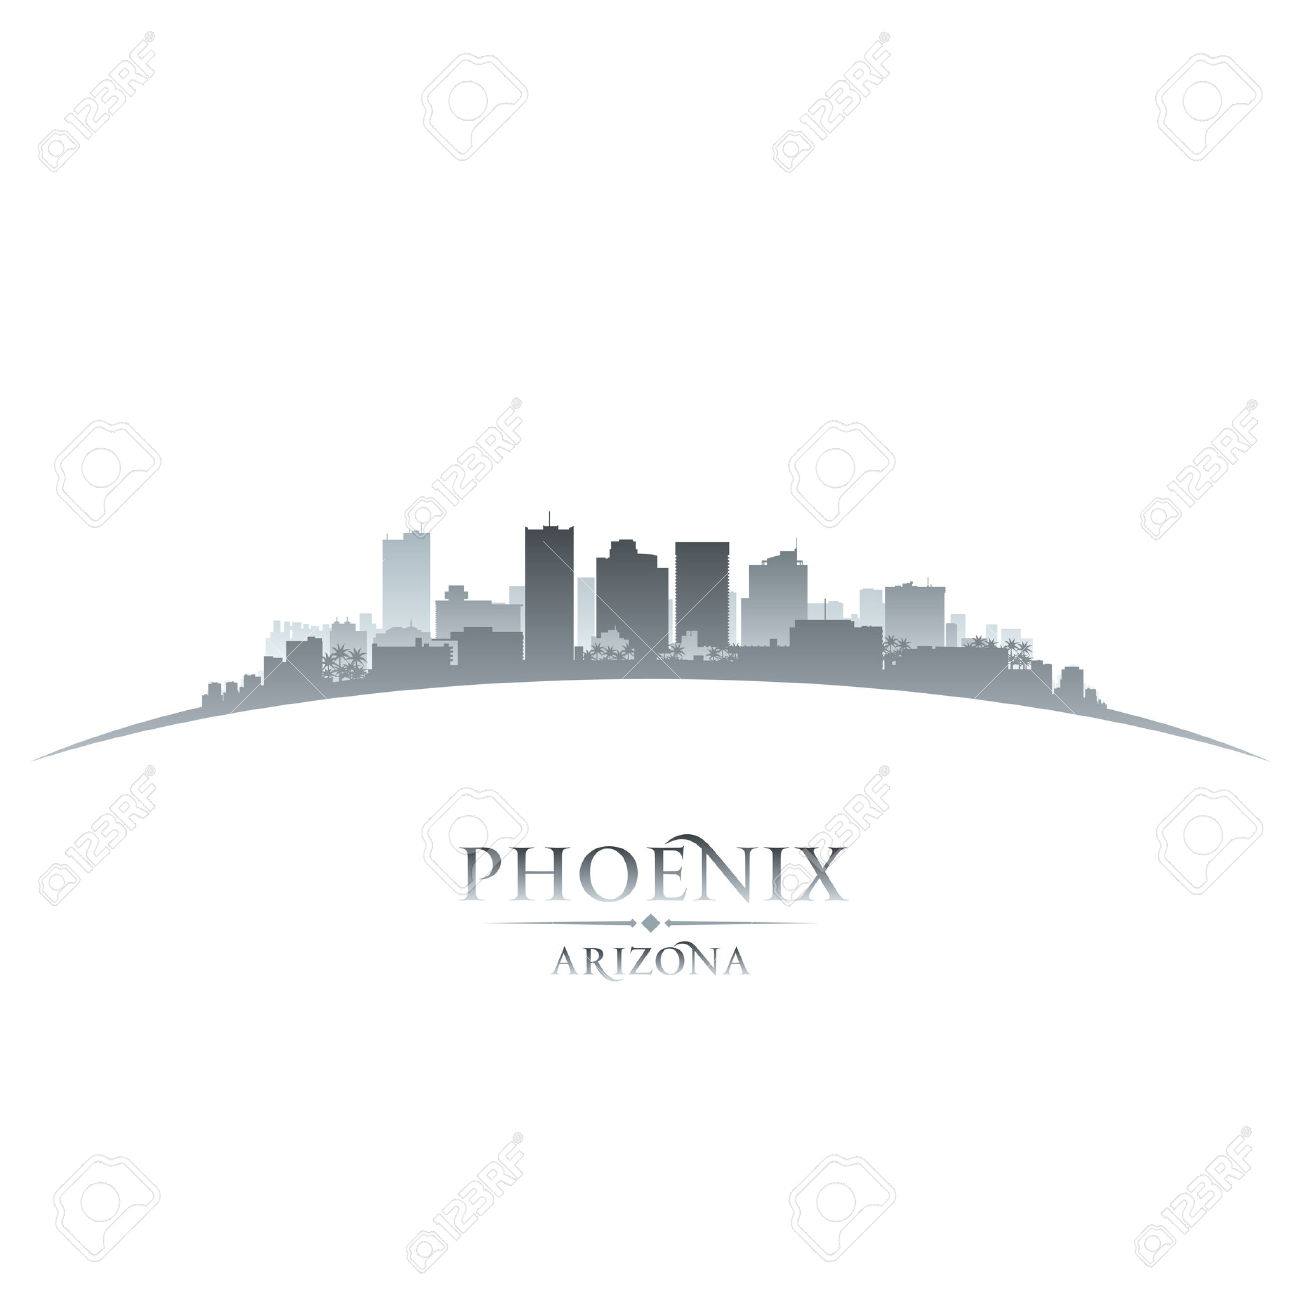 139 Phoenix Skyline Stock Vector Illustration And Royalty Free.